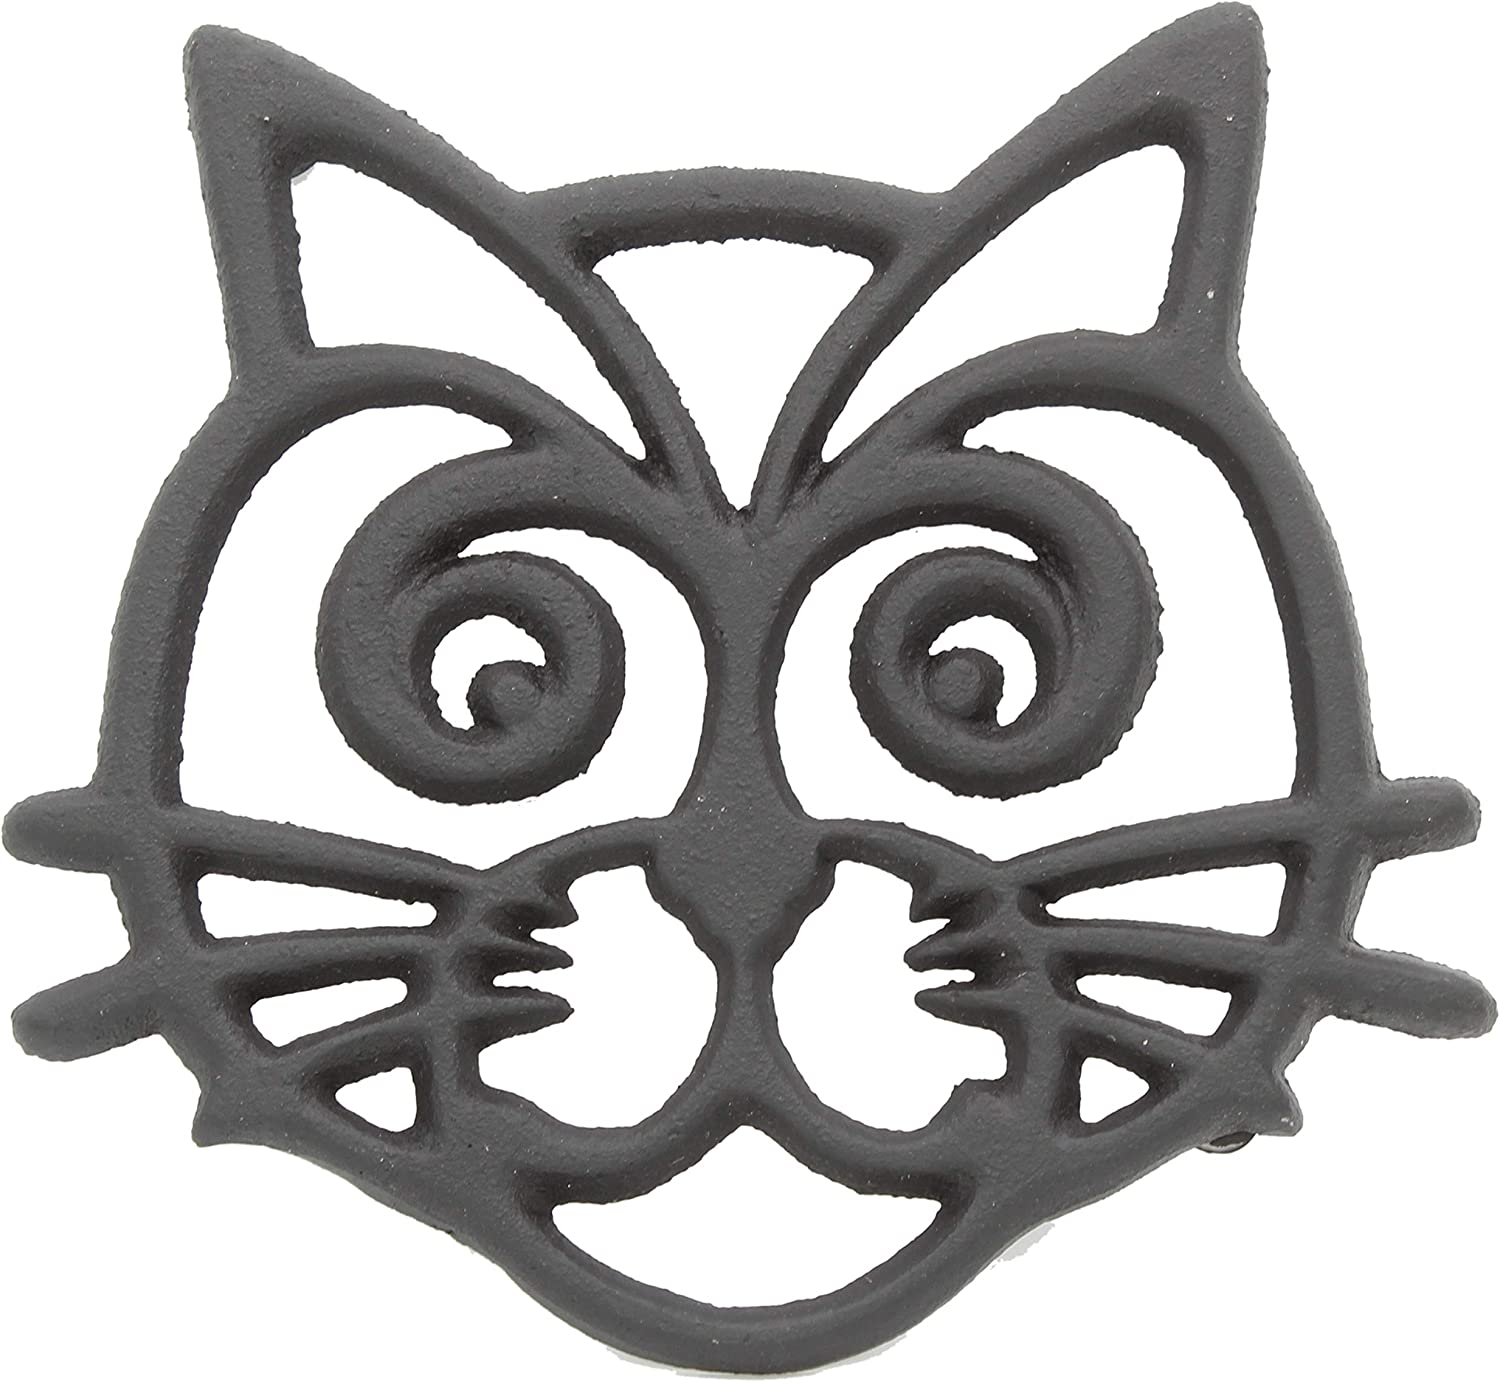 Cast Iron Cat Face Trivet | Decorative Pot Pan Trivet For Kitchen Counter or Dining Table Vintage Design Trivets | Use For Teapot Casseroles Slow Cooker Crock Pot | With Rubber Feet Recycled Metal